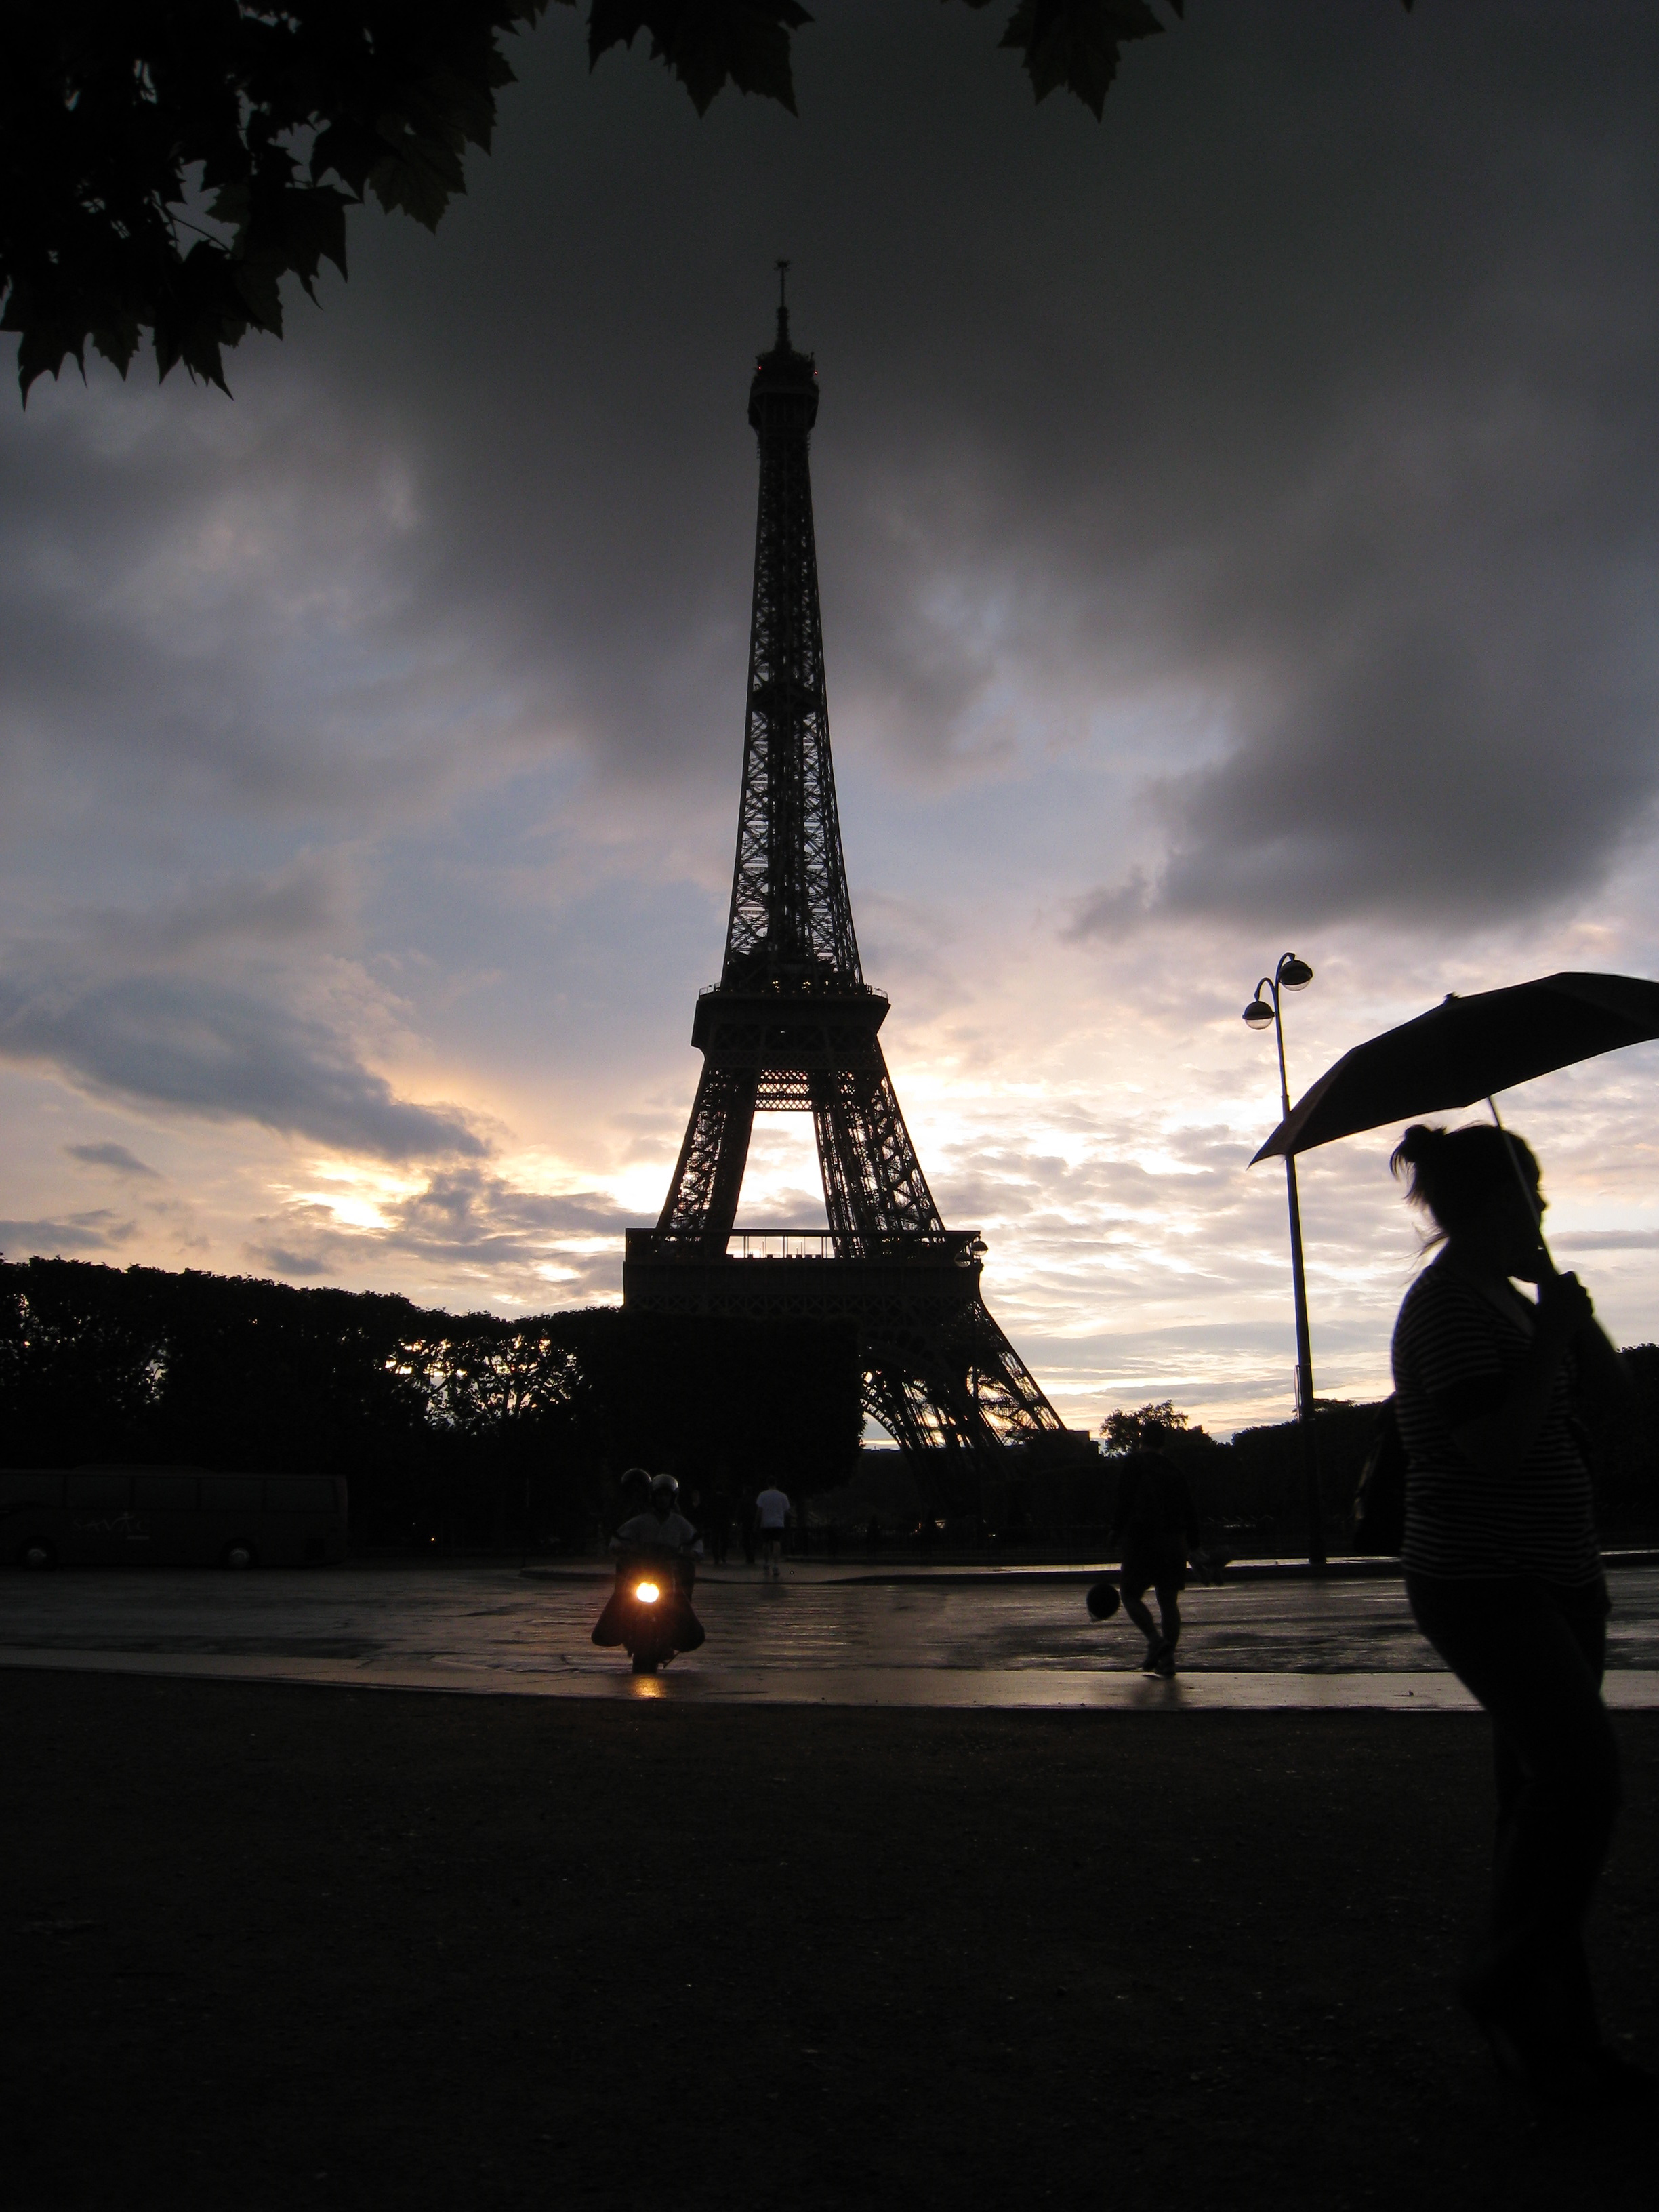 Rainstorm, Paris